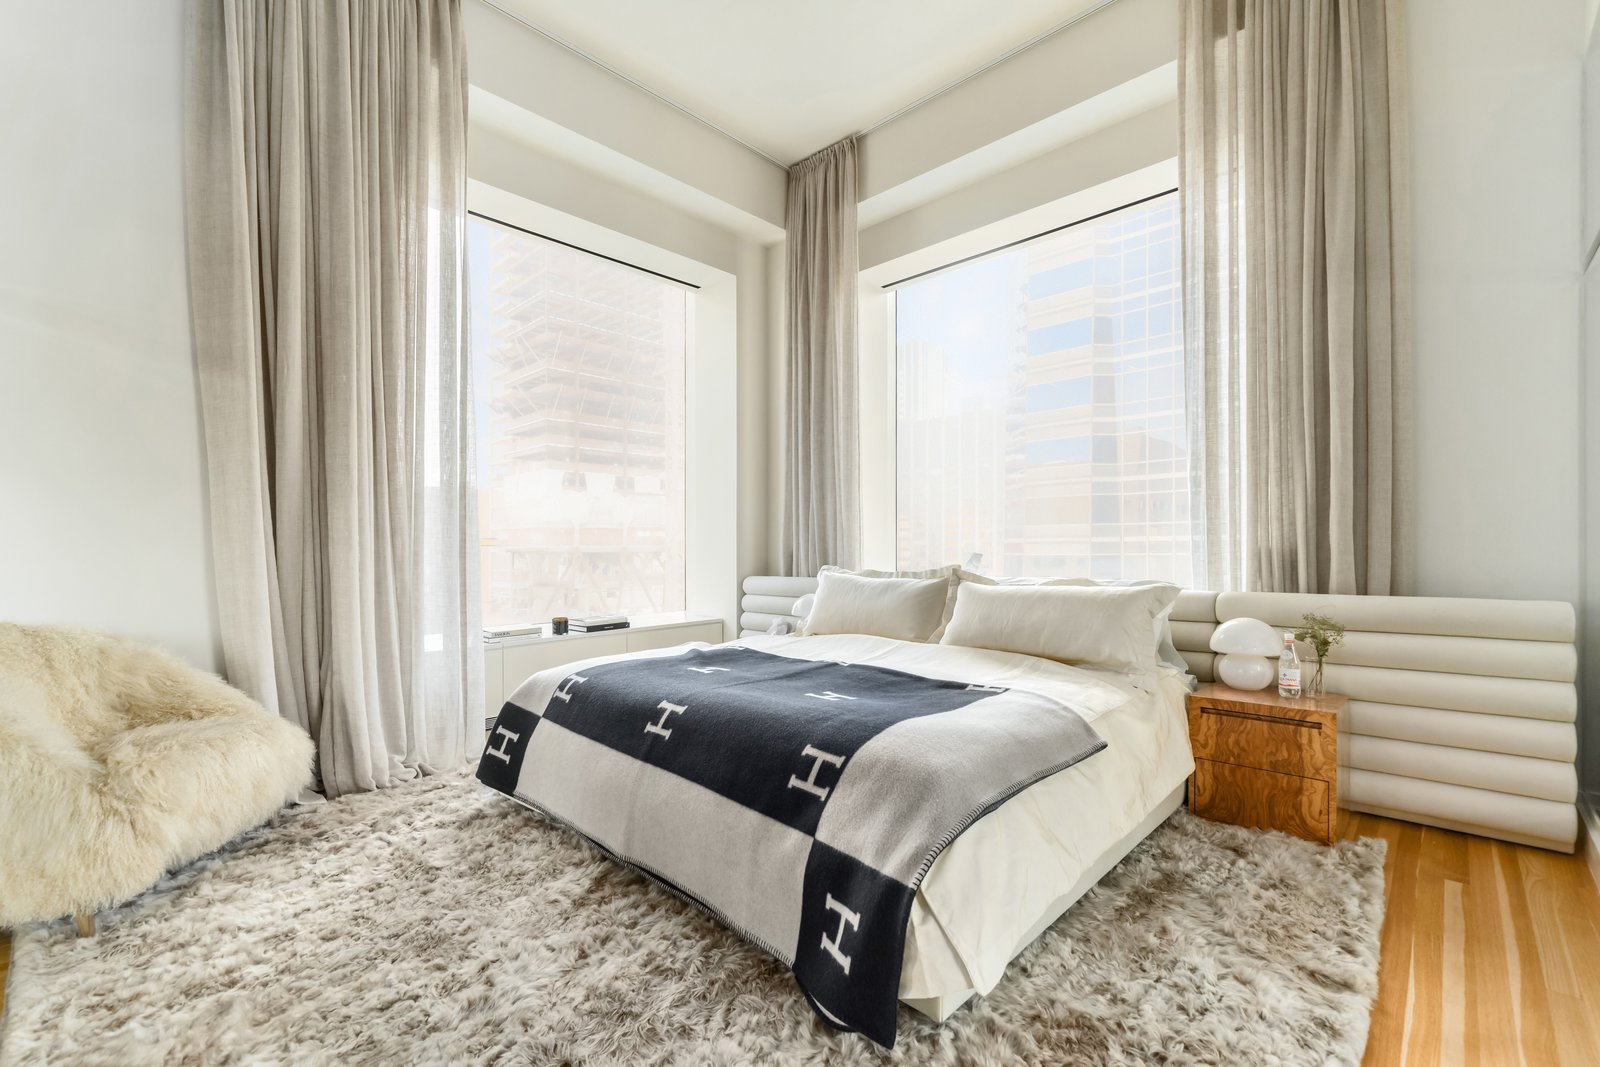 J.Lo and A-Rod's 432 Park Avenue apartment master bedroom